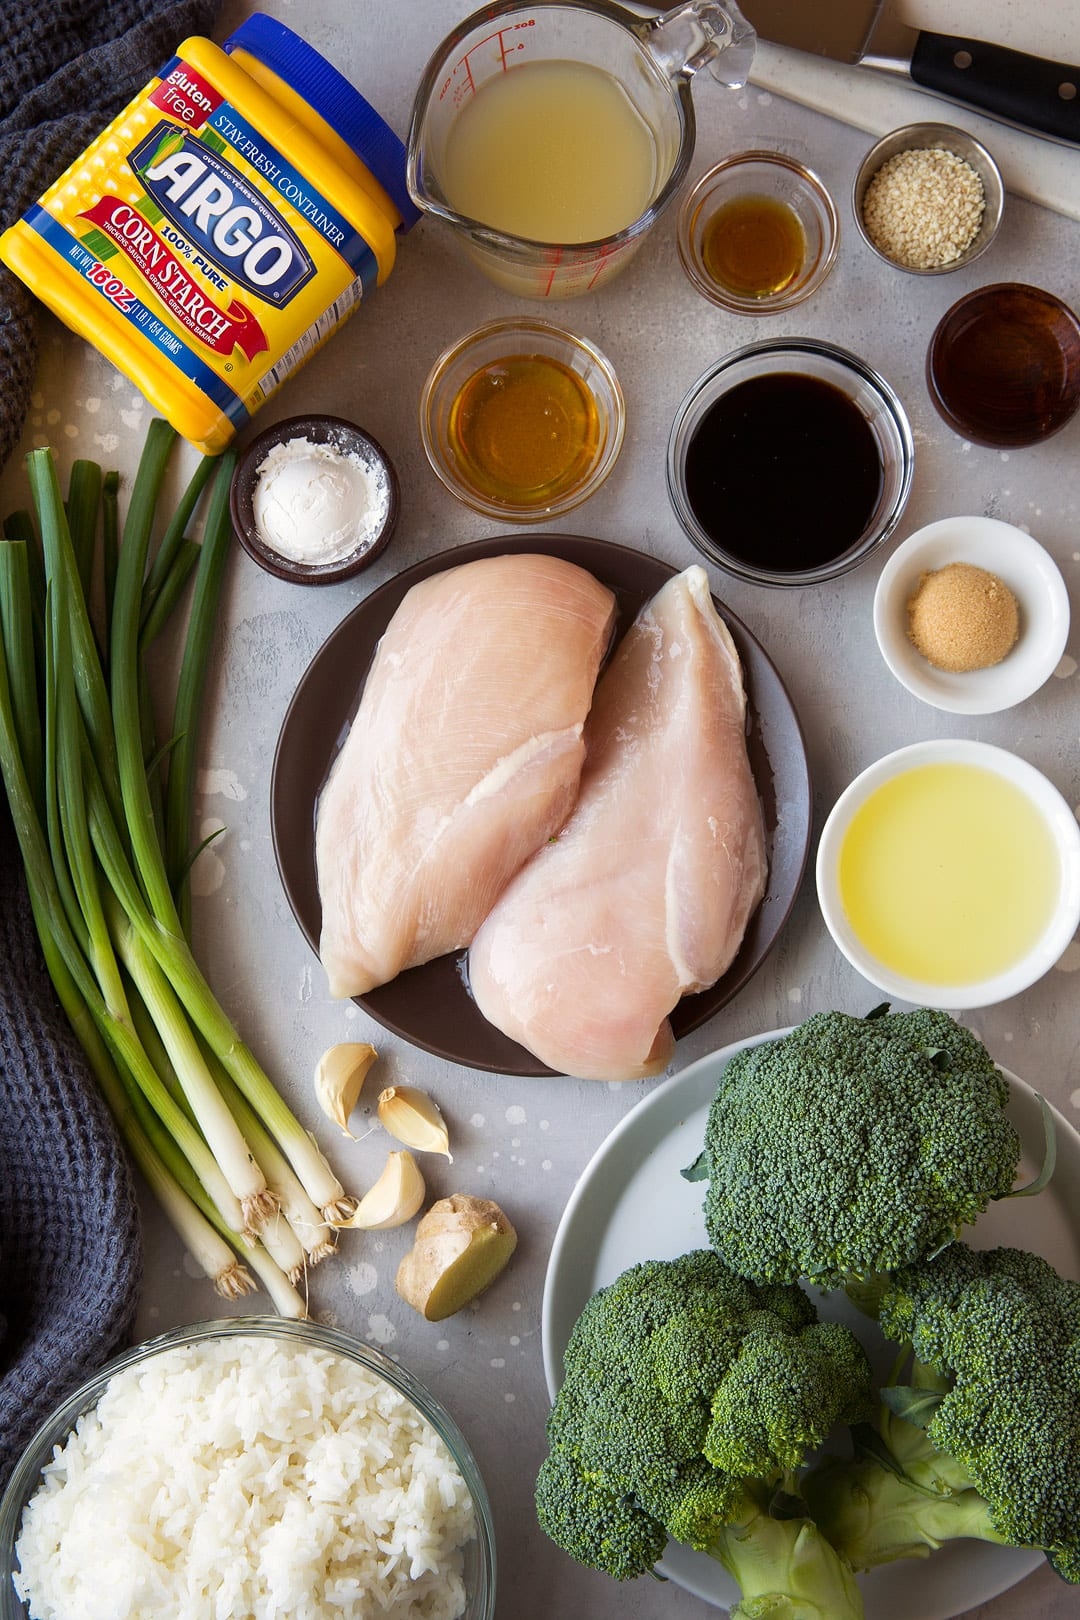 Chicken and Broccoli Stir Fry ingredients laid out on counter